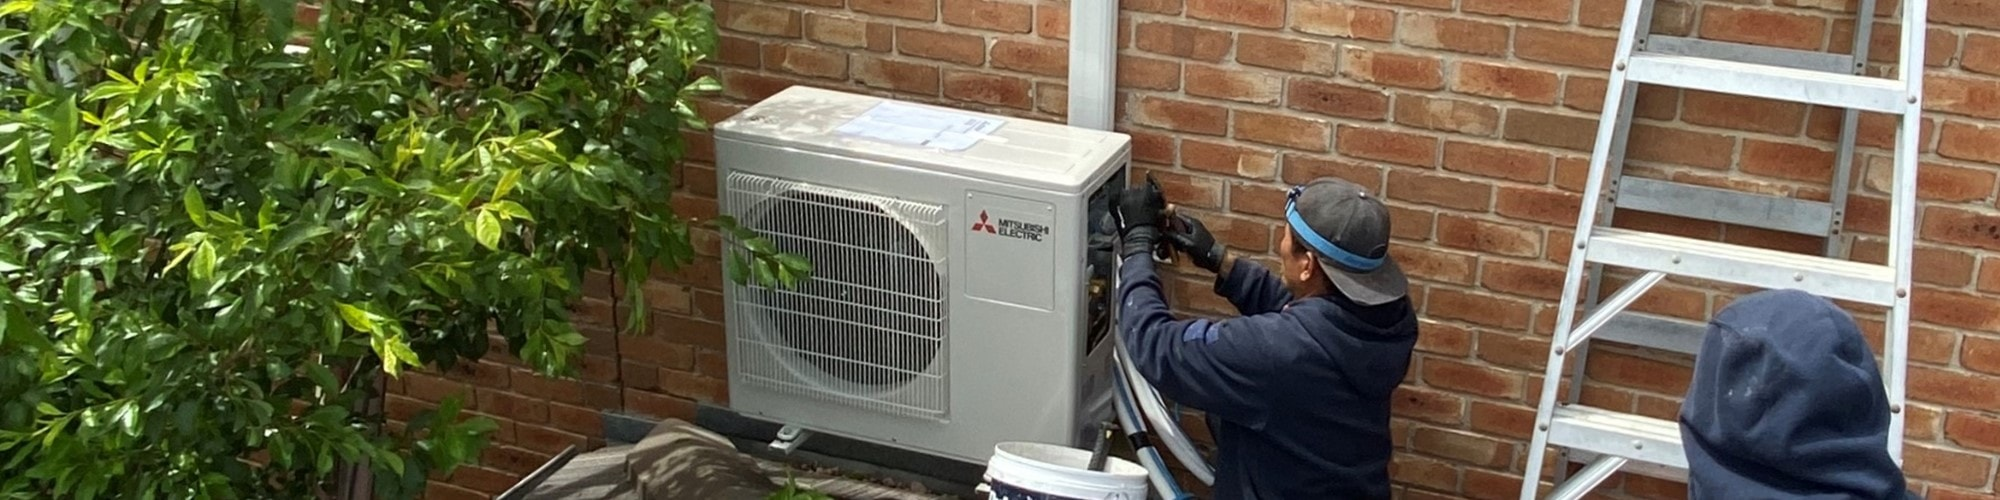 rapid cold staff installation feature